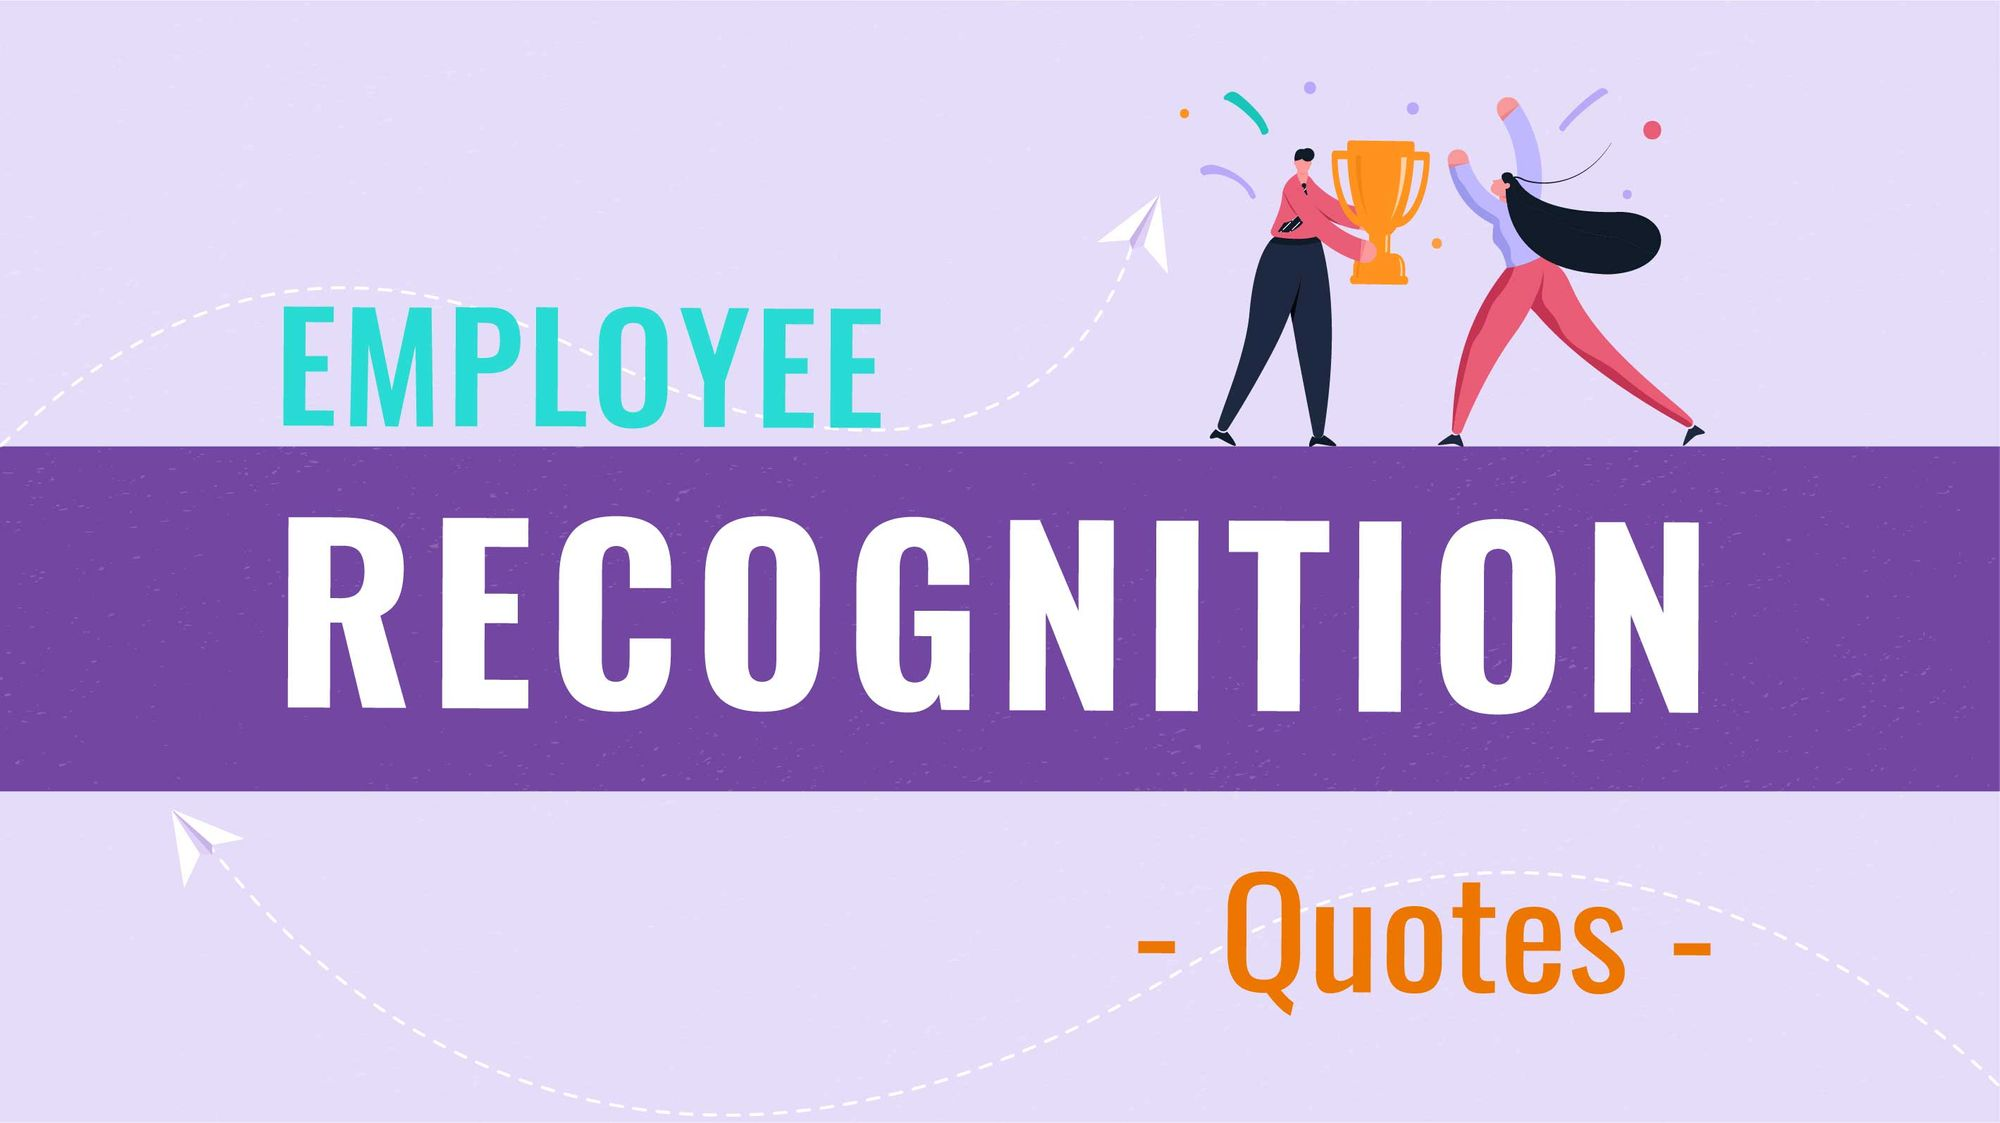 30 Employee Recognition Quotes To Celebrate, Inspire and Motivate